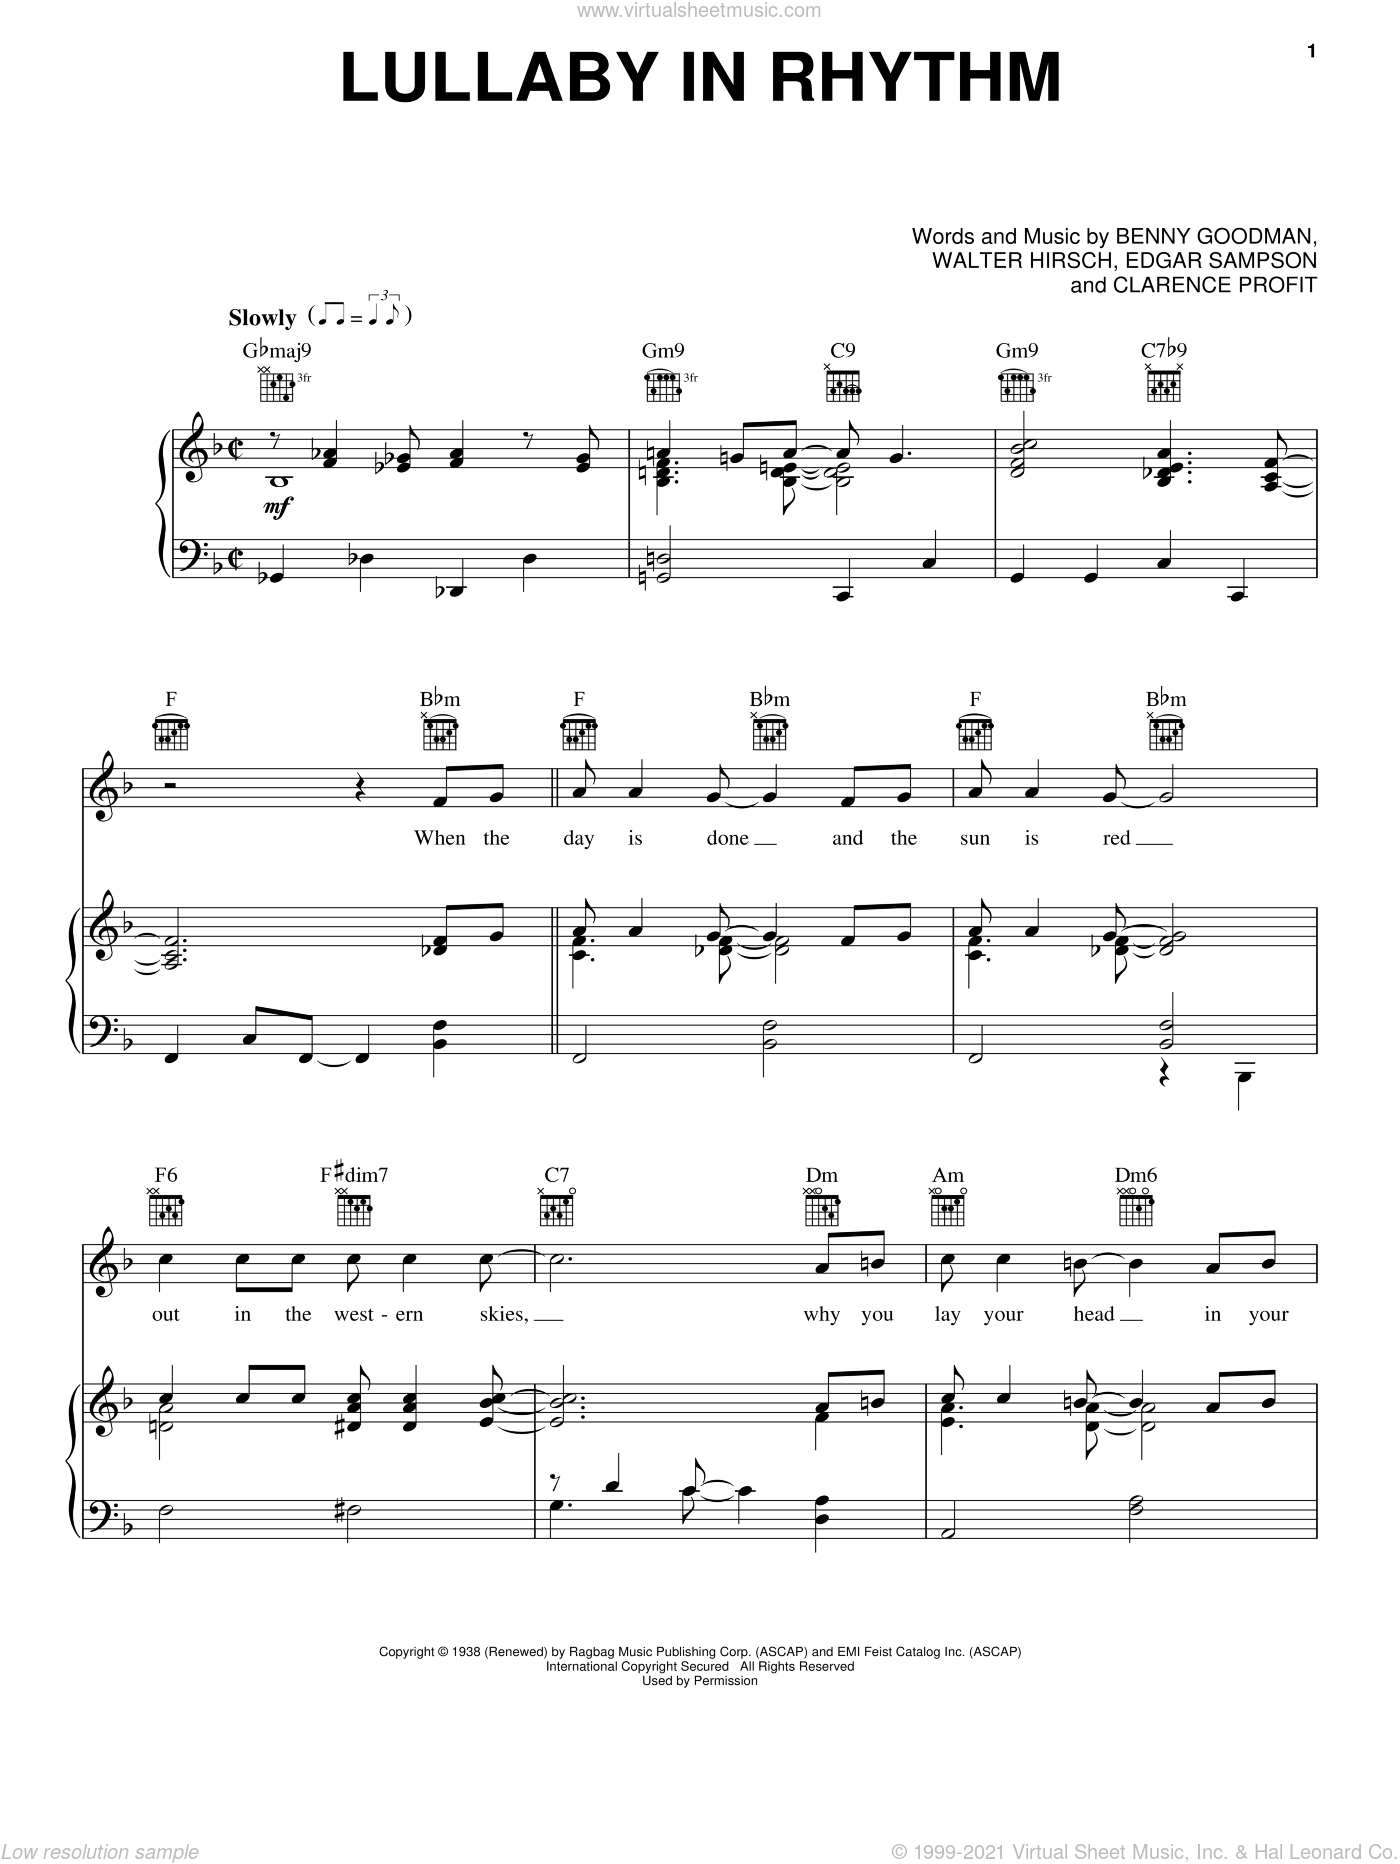 Lullaby In Rhythm sheet music for voice, piano or guitar by Clarence Profit. Score Image Preview.